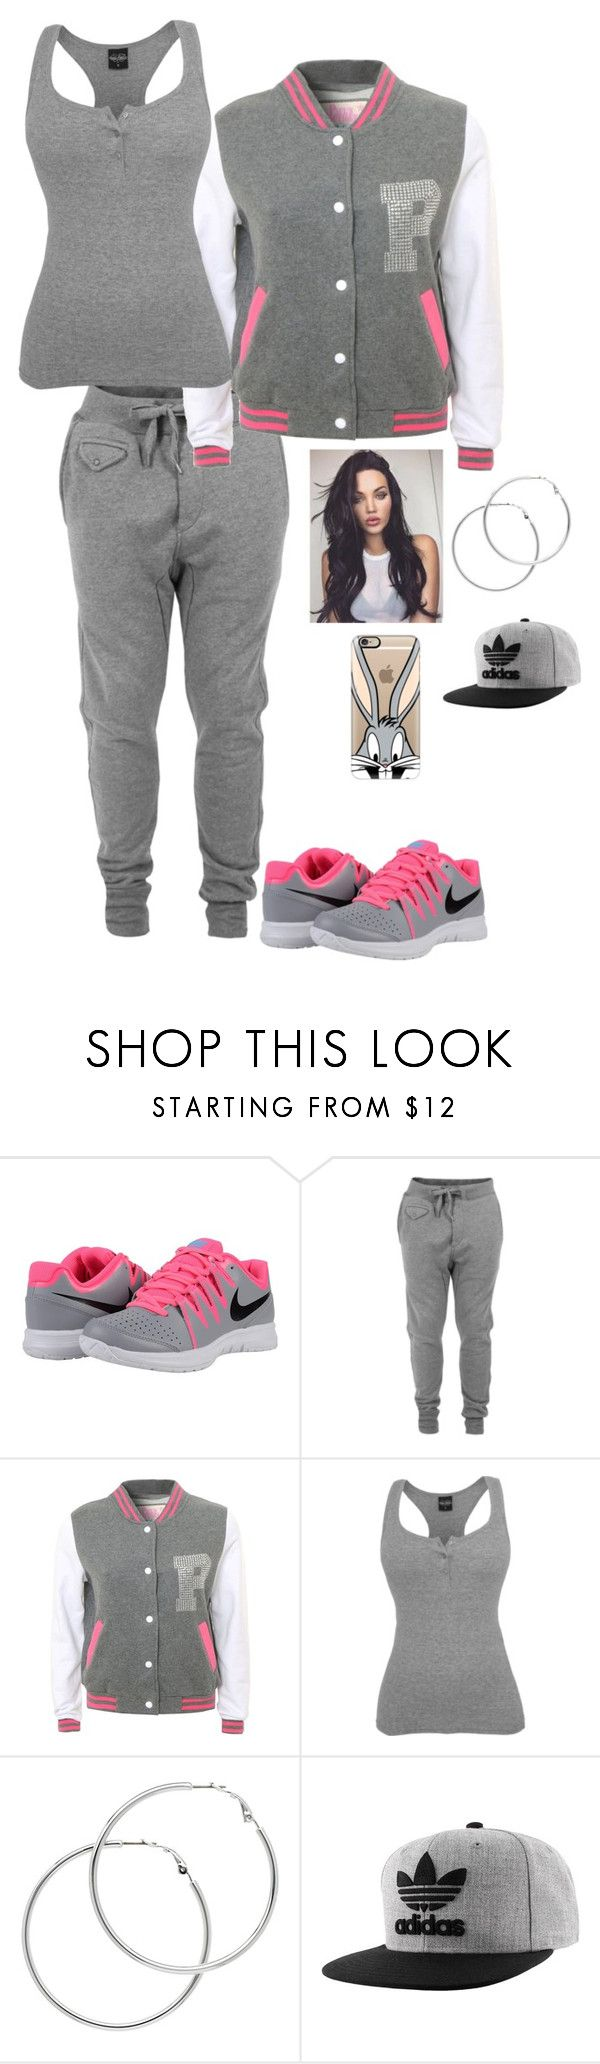 """""""Flawless"""" by anna-dxxxi ❤ liked on Polyvore featuring NIKE, Diesel, Paul's Boutique, Melissa Odabash, adidas Originals and Casetify"""